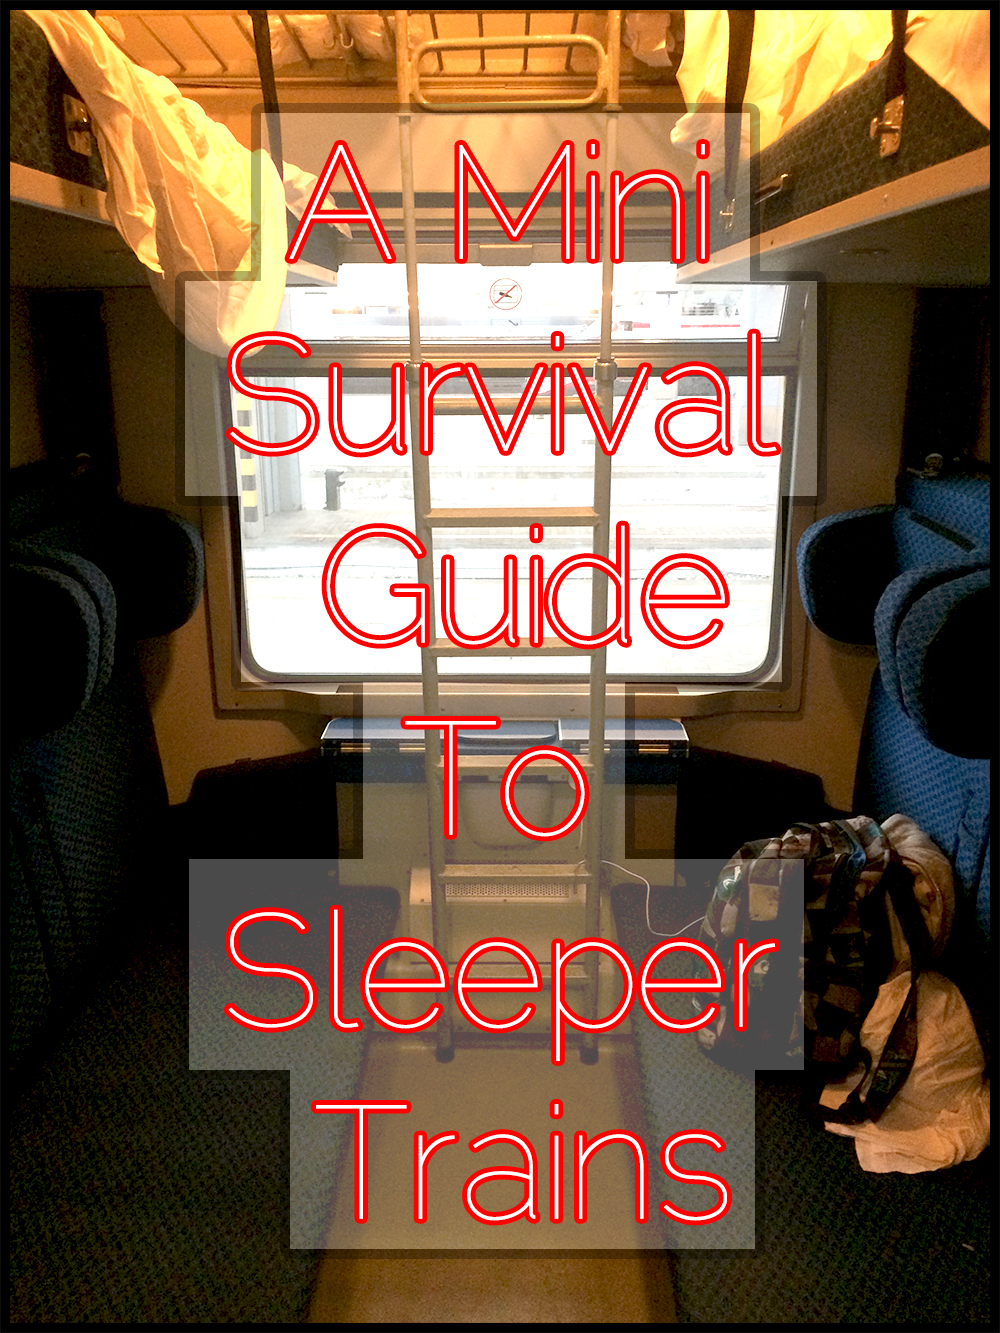 Survival guide to sleeper trains